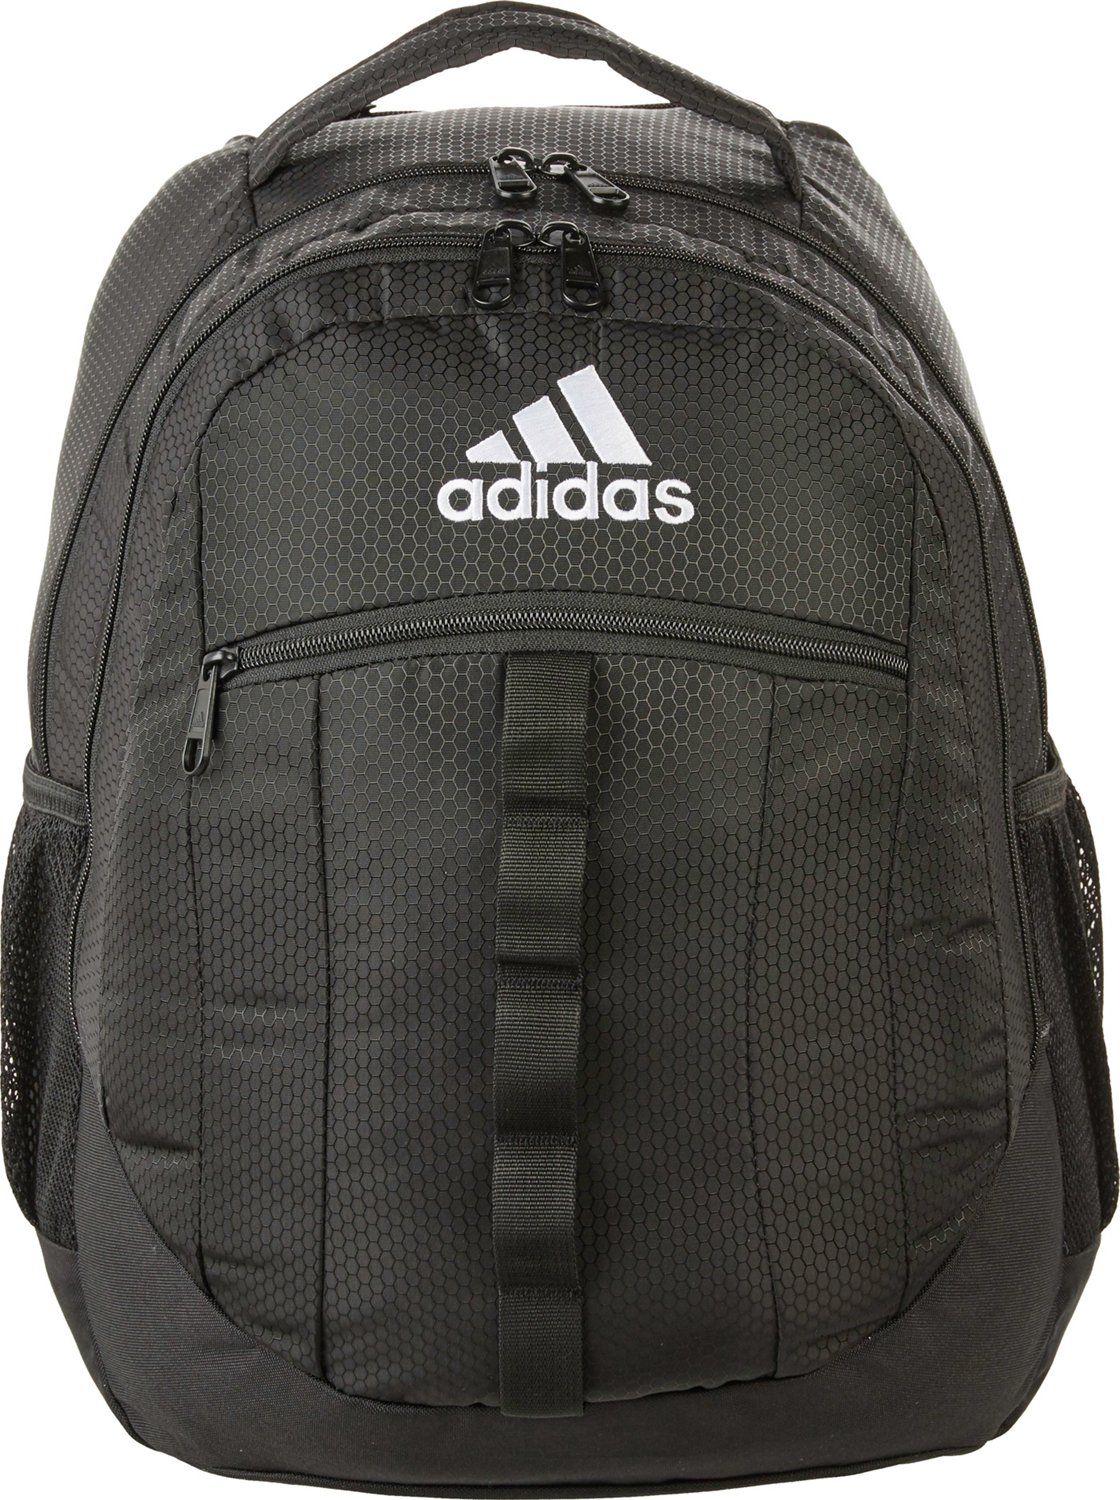 5a26855fa Display product reviews for adidas Stratton II Backpack